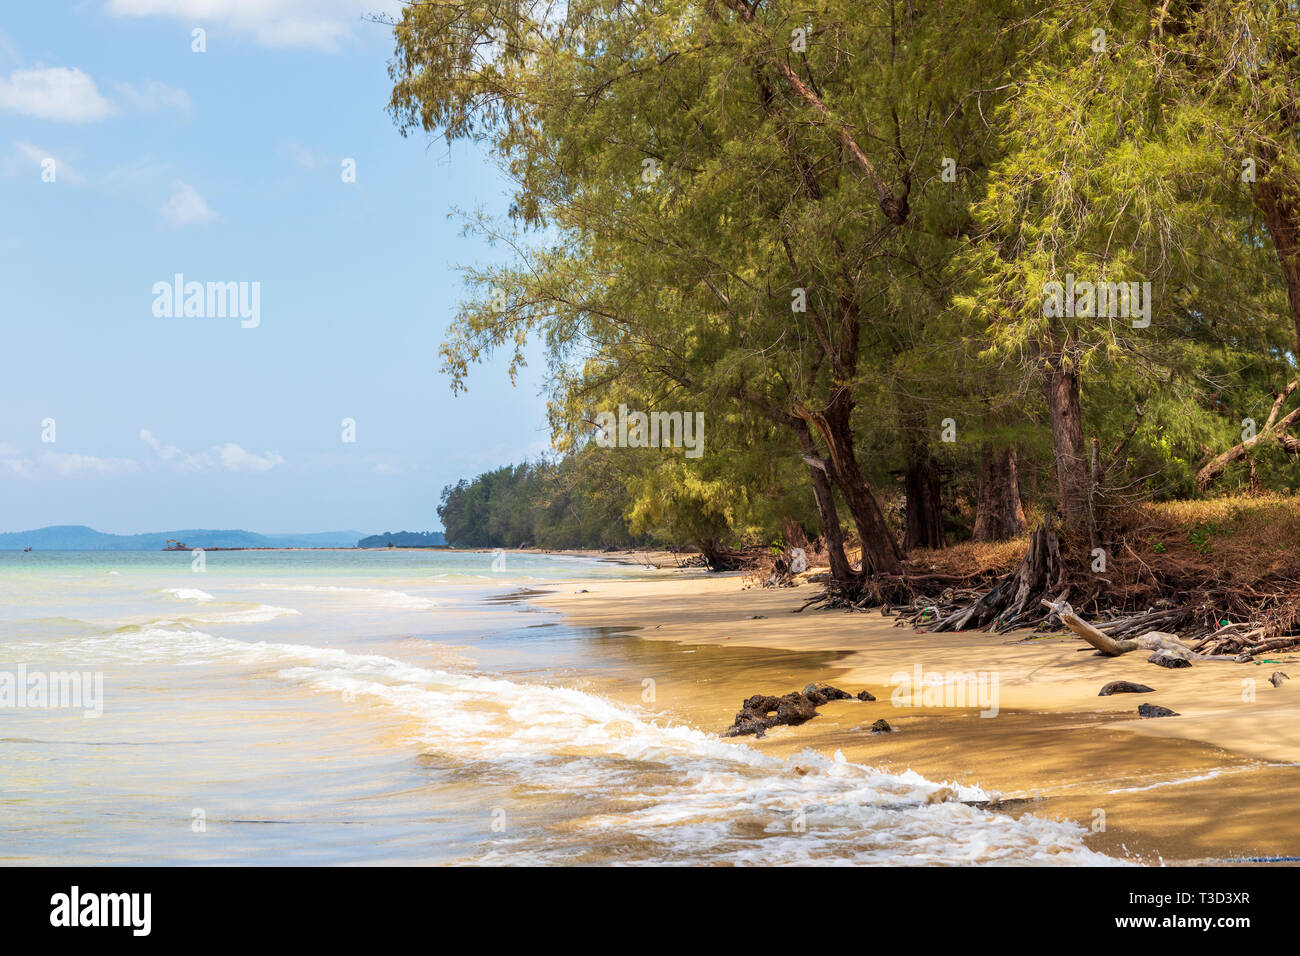 Bai Day Tay beach on Phu Quoc Island overlooking the Gulf of Thailand, Vietnam, Asia - Stock Image